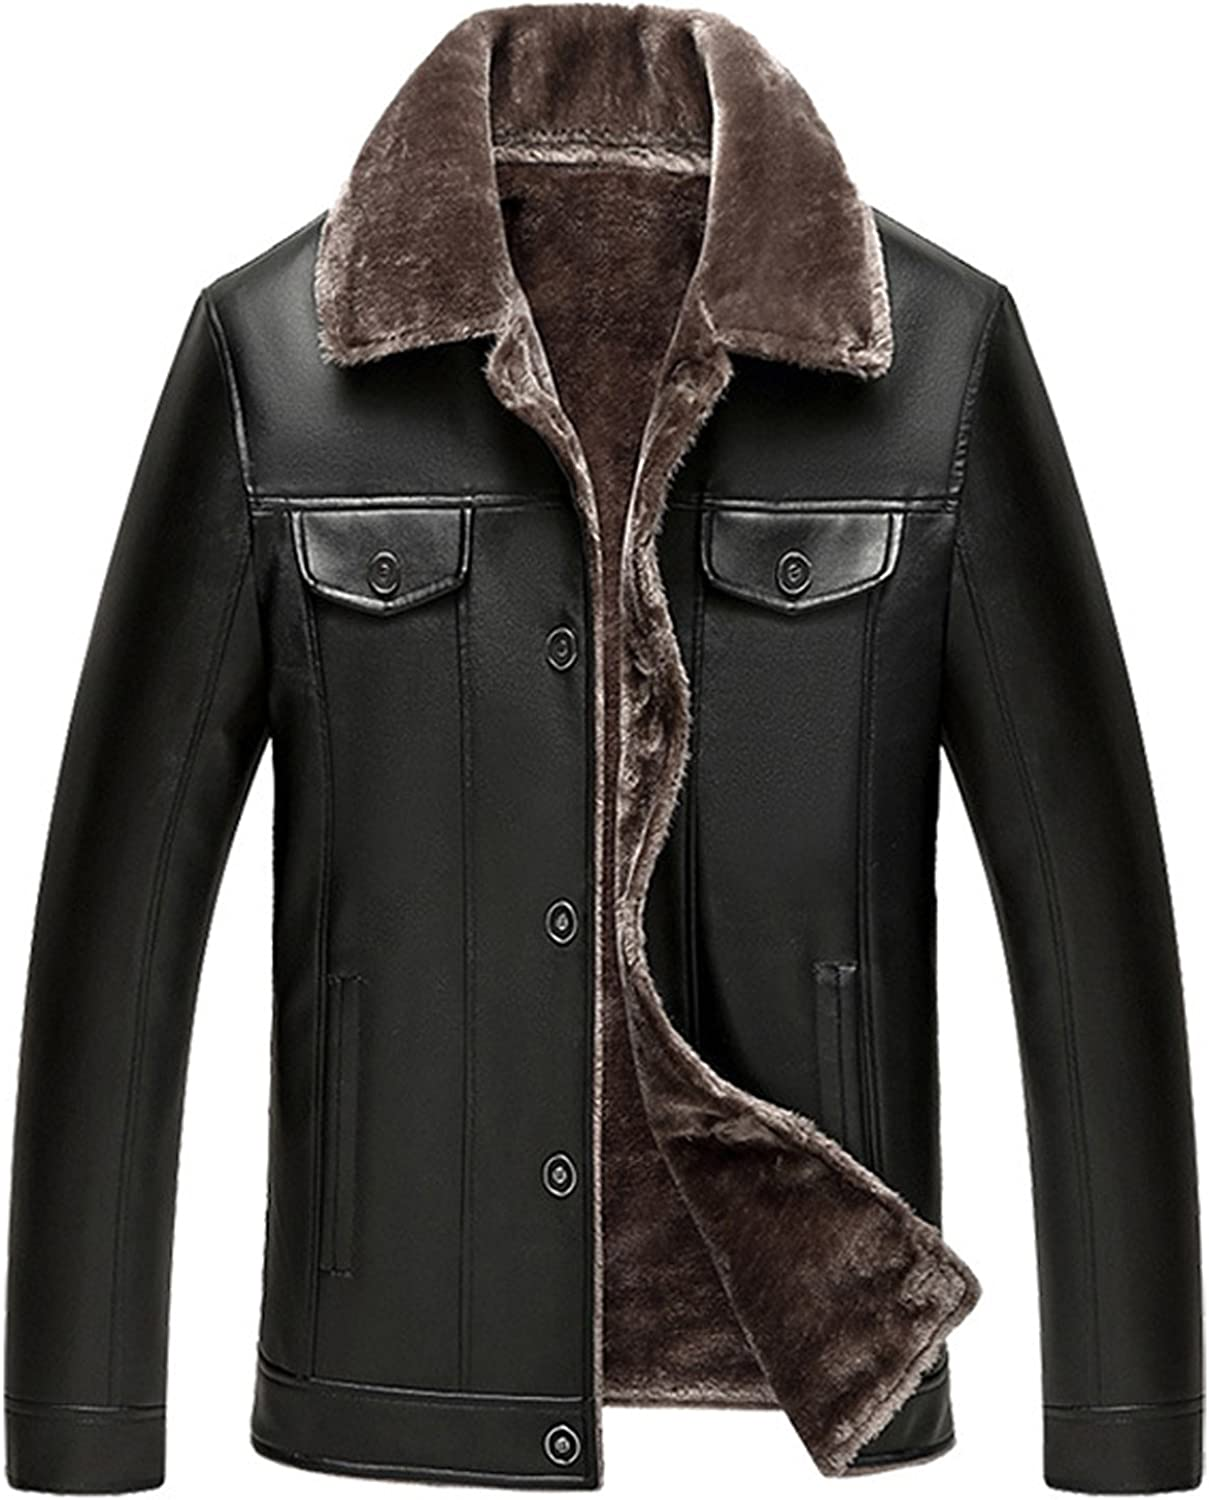 SS Men Casual Slim Solid Lapel Surprise price Single excellence Fau Breasted Fleece Lined